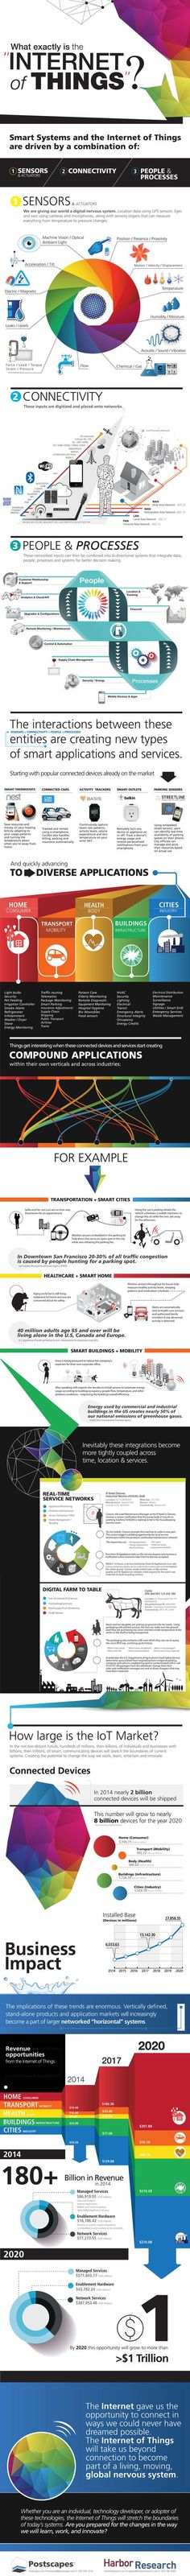 EBN - Hailey Lynne McKeefry - Infographic: Defining the Internet of Things